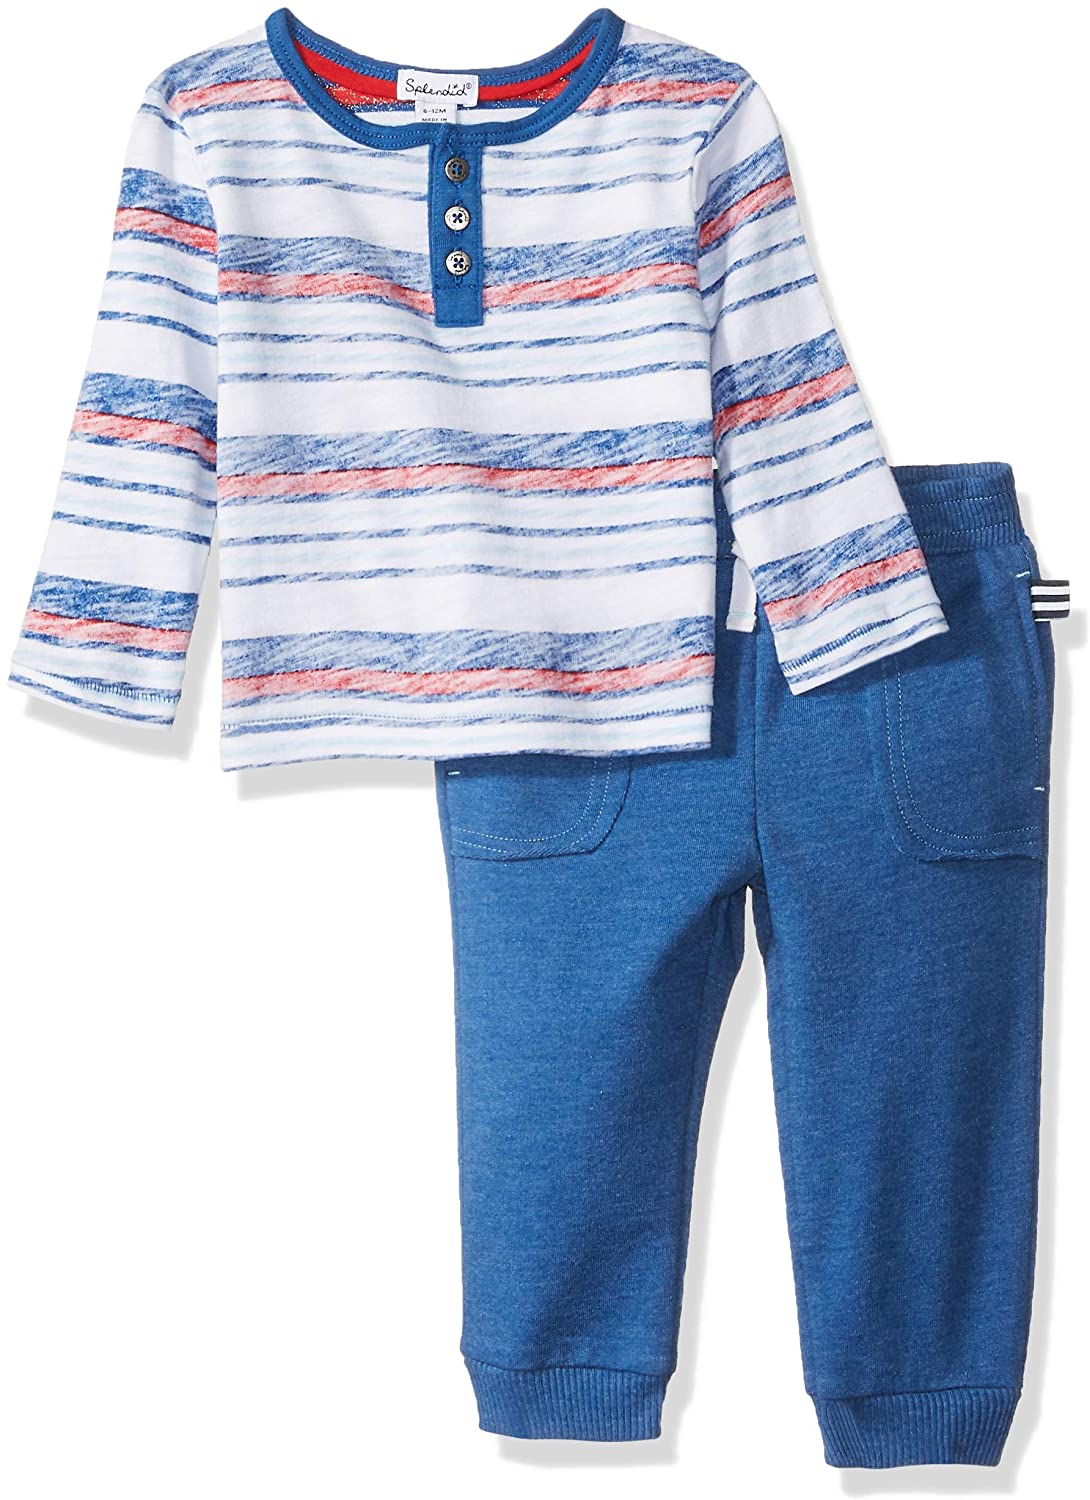 Splendid Toddler Boys' Kids and Baby Long Sleeve Top and Bottom 2 Piece Set, Vertical Blue, 3T